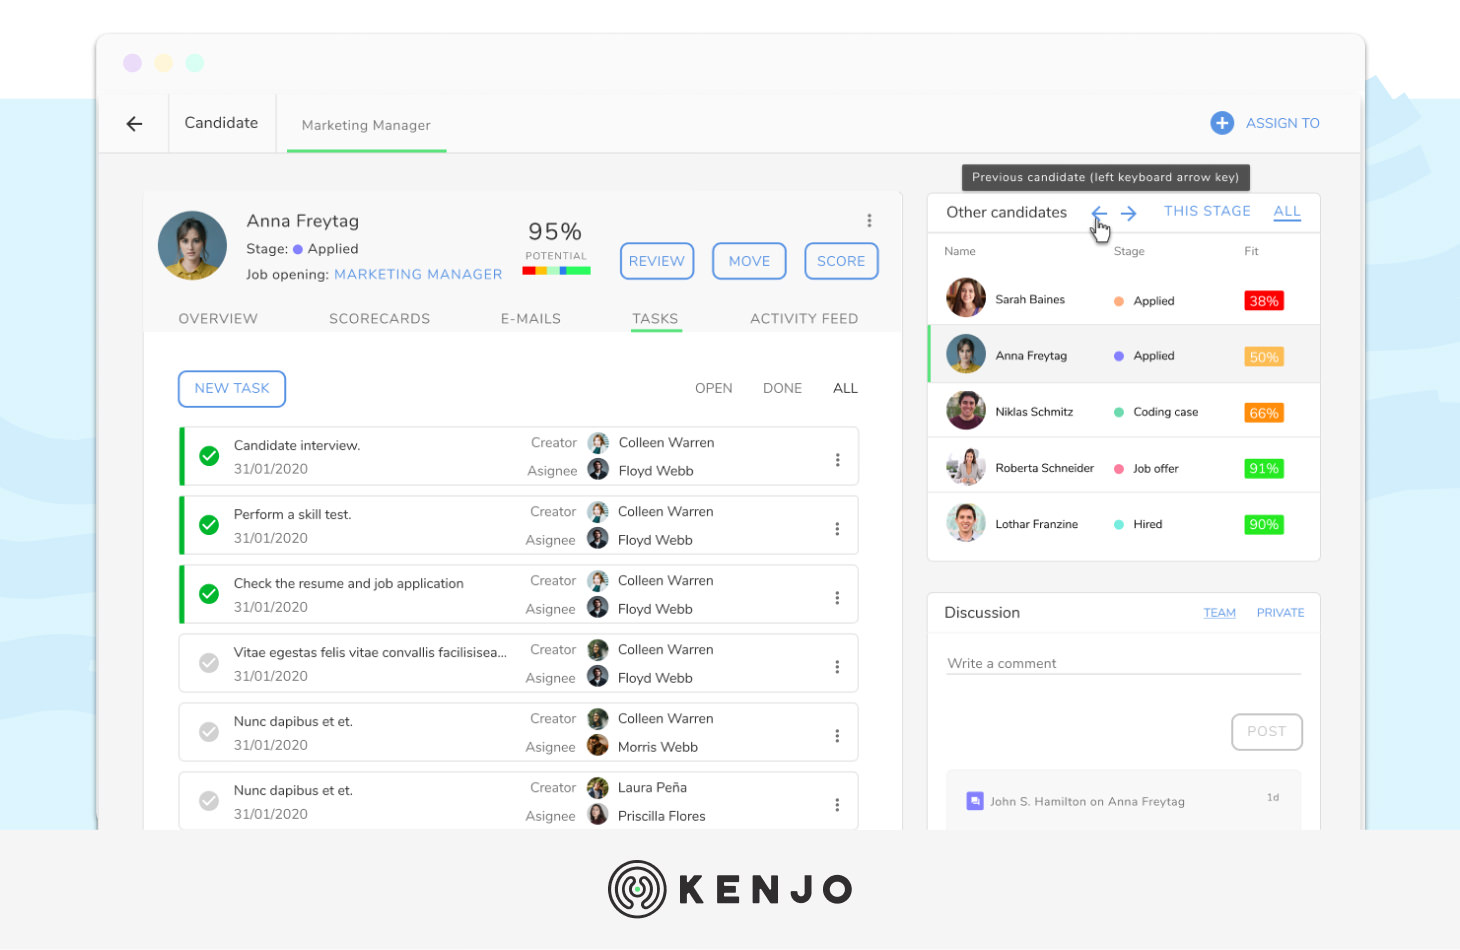 interface del software ATS de Kenjo